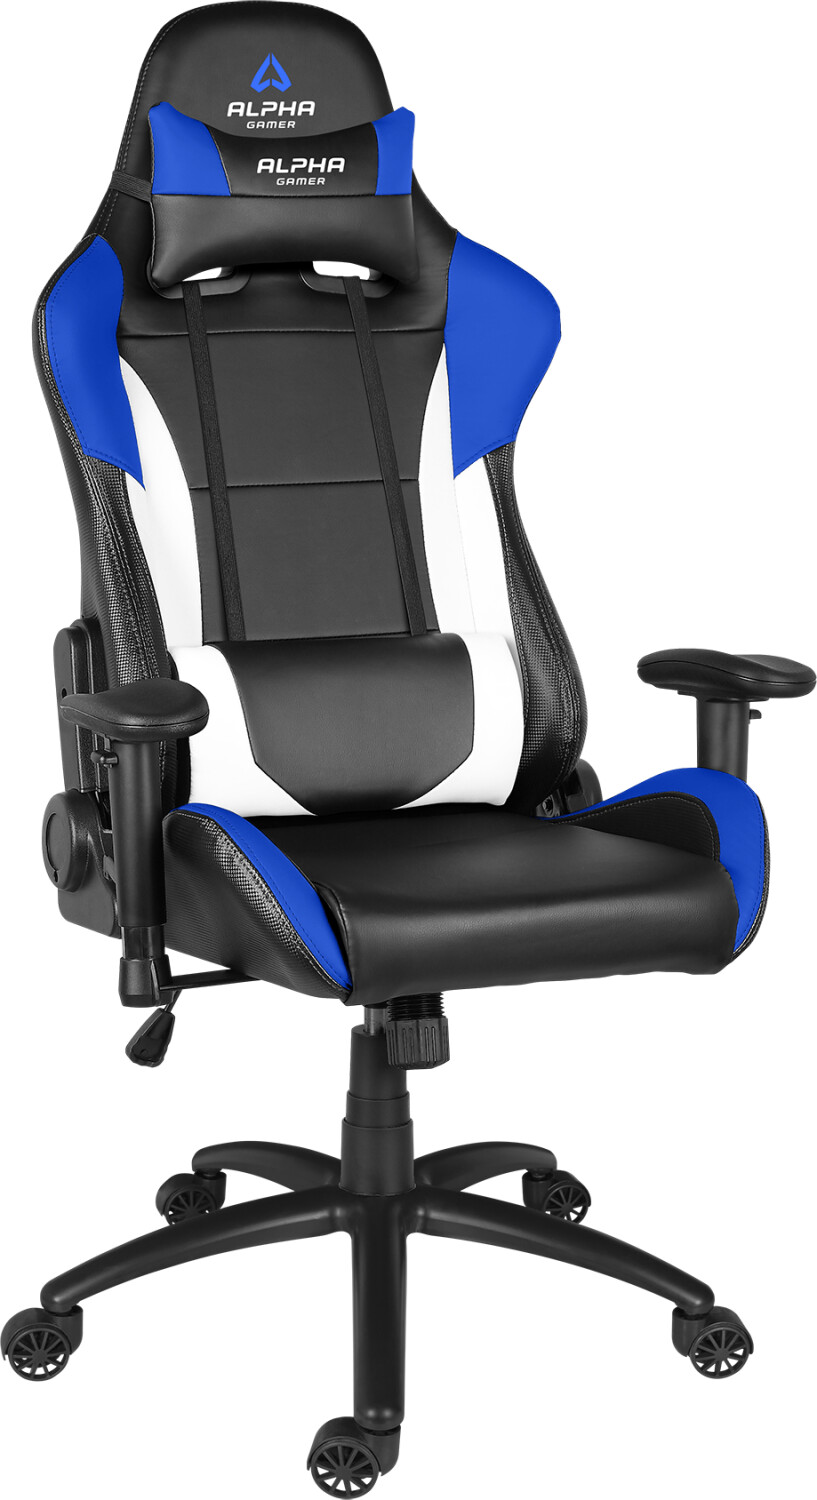 Alpha Gamer Orion V2 blau